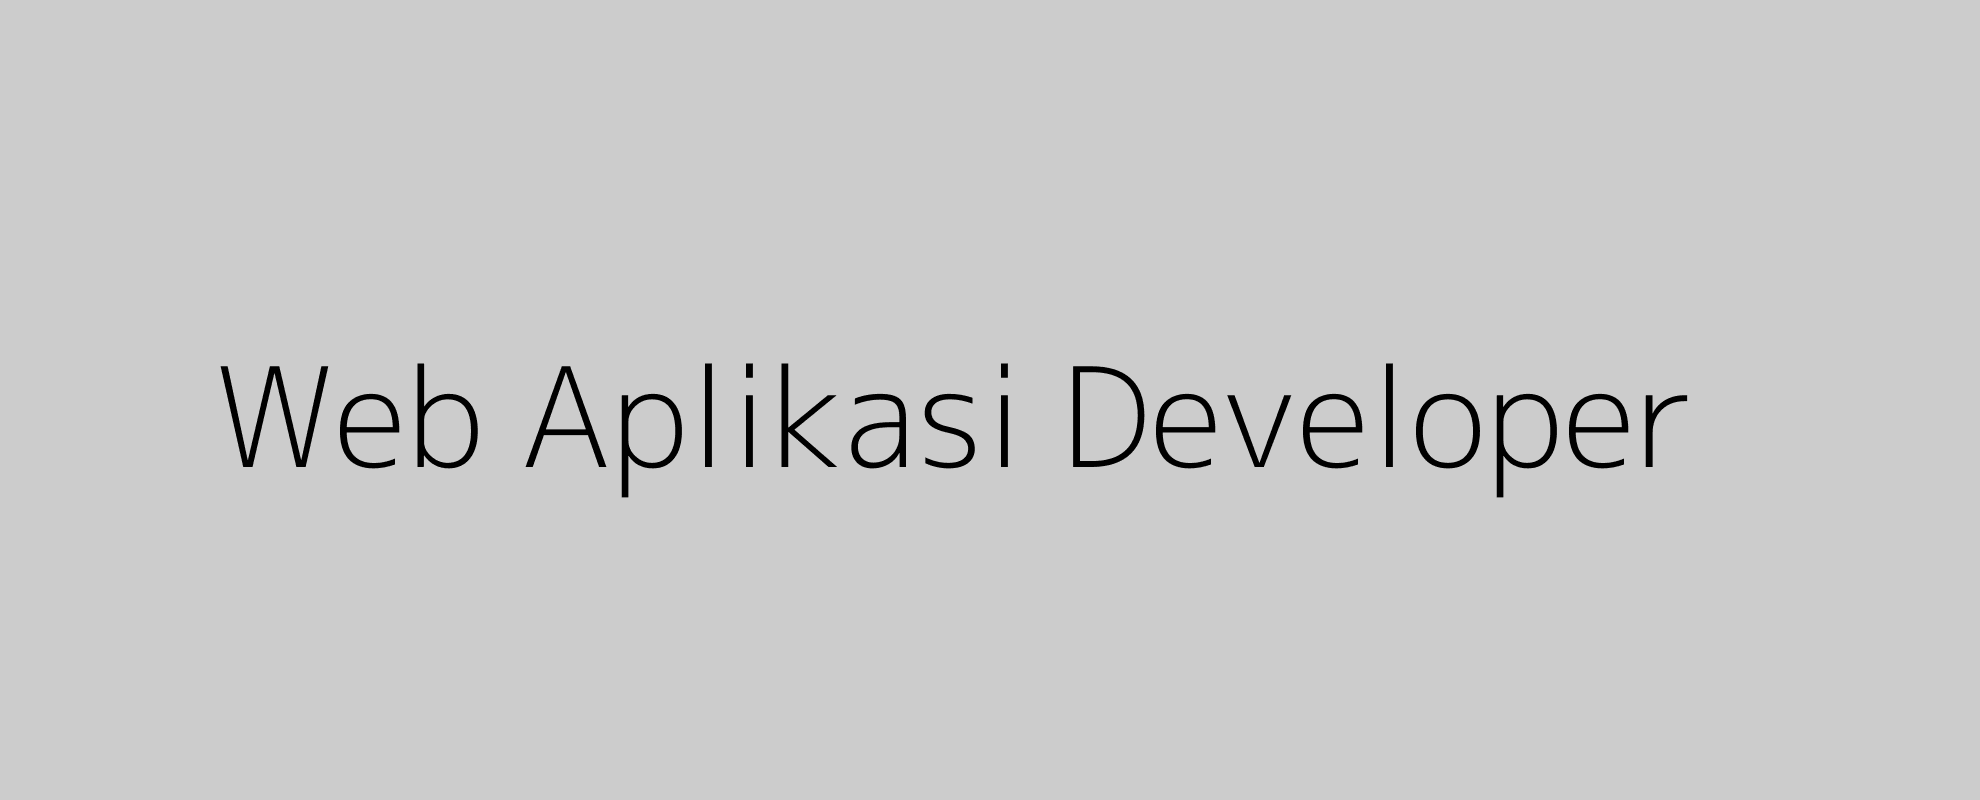 Web Aplikasi Developer